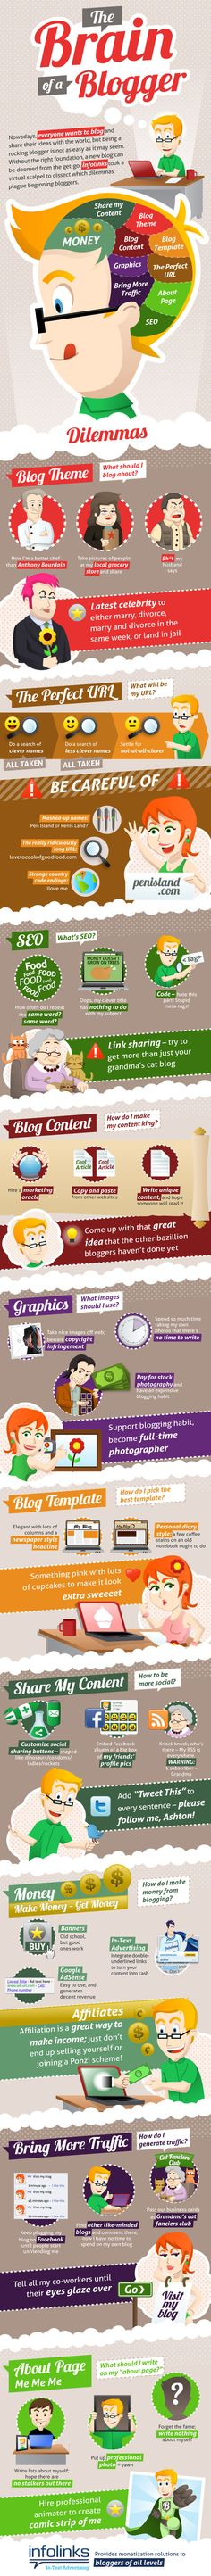 The Brain of a Blogger #infographic #illustration